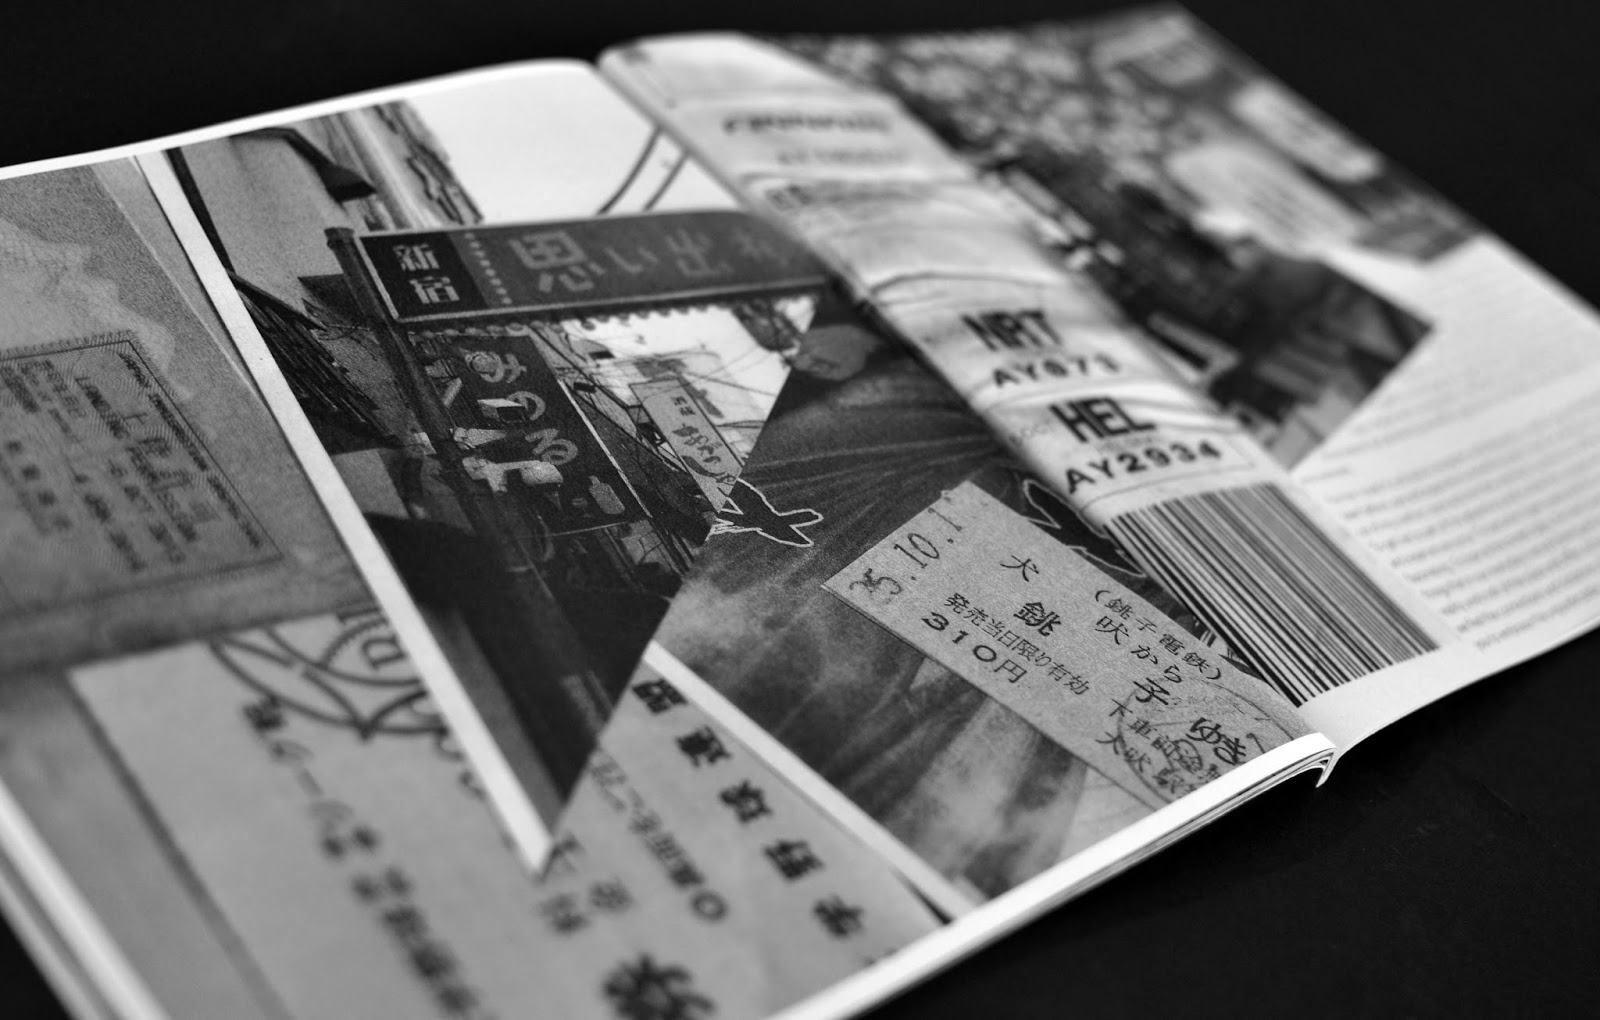 How to scrapbook magazine articles - The Roaming Renegades Travel Publication Travel Travel Blog Layout Design Scrapbook